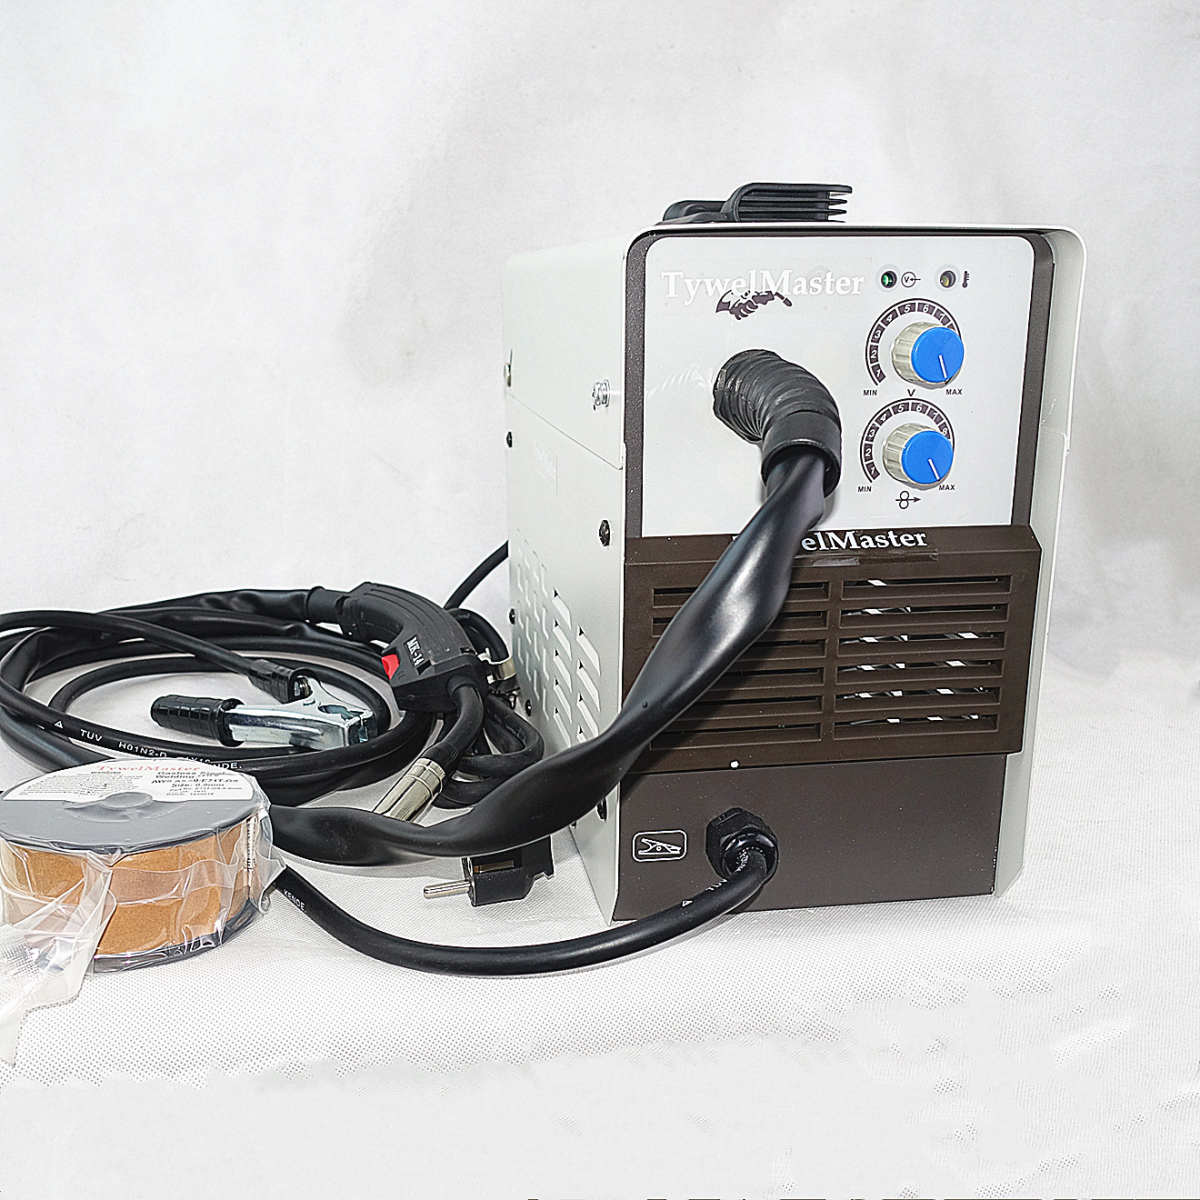 Gasless MIG Welding Machine 120A 230V Inverter IGBT 1kg Mini Spool Self Shield E71T-GS Flux Cored Arc Wire No Gas MIG Welder